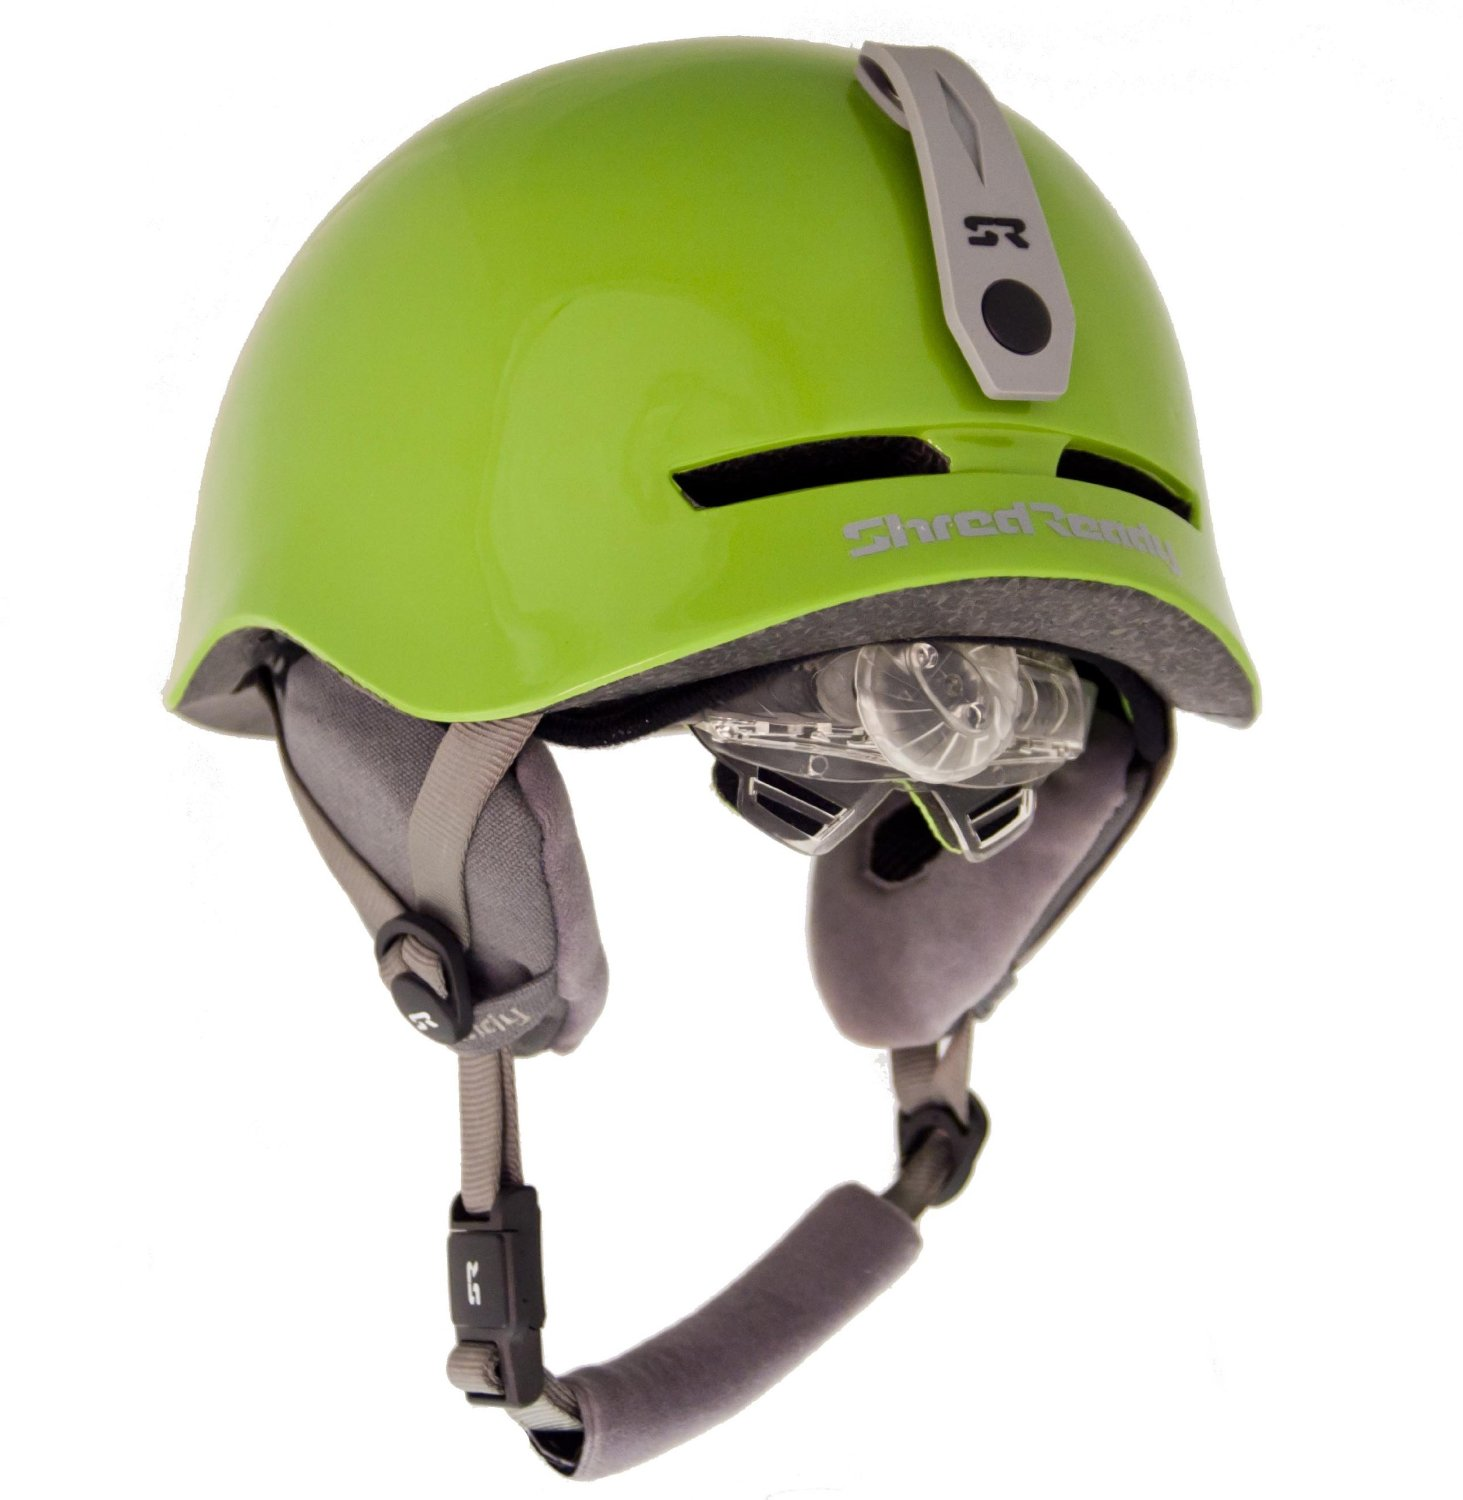 Large Shred Ready Bicycle Helmets